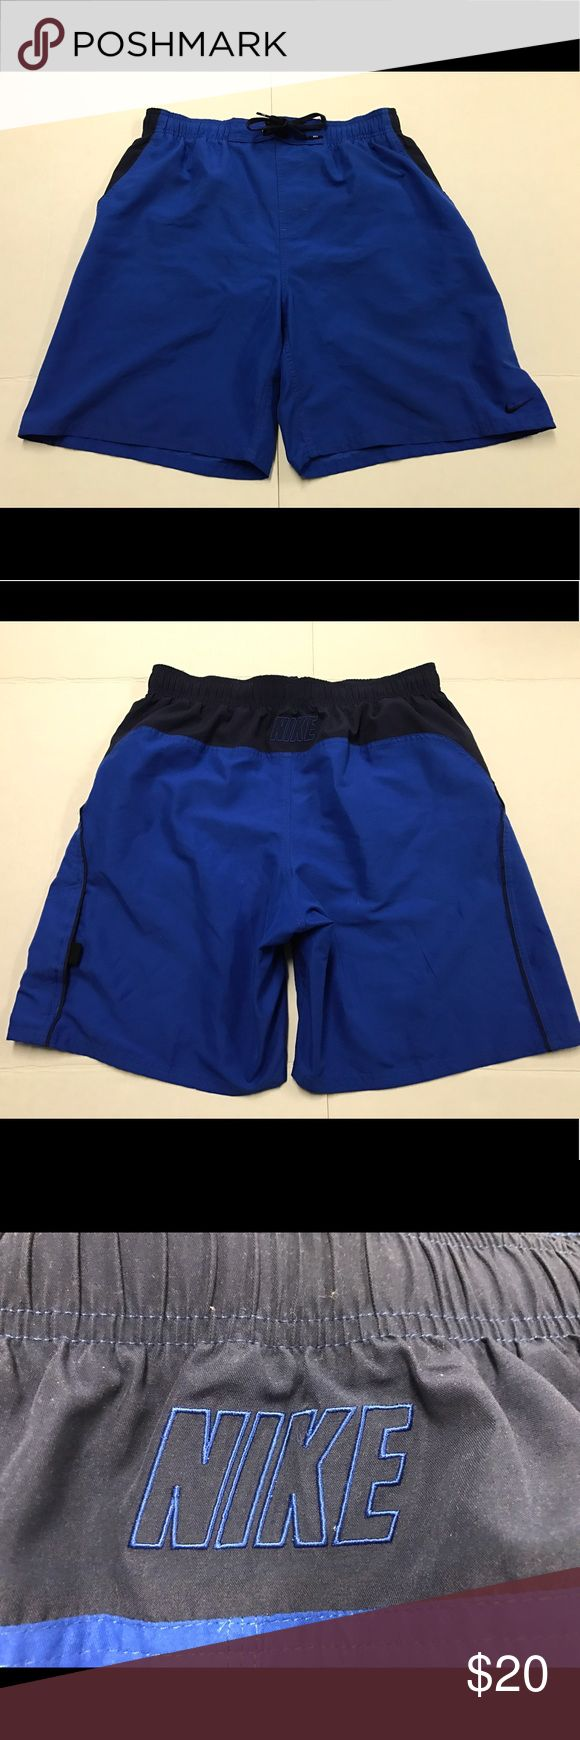 """Nike Swim Trunks Board Shorts Volley Ball Spellout Shorts are in great condition ready to use the measurements are waist 16-18"""" rise 12"""" inseam 8"""" Nike Shorts Athletic"""